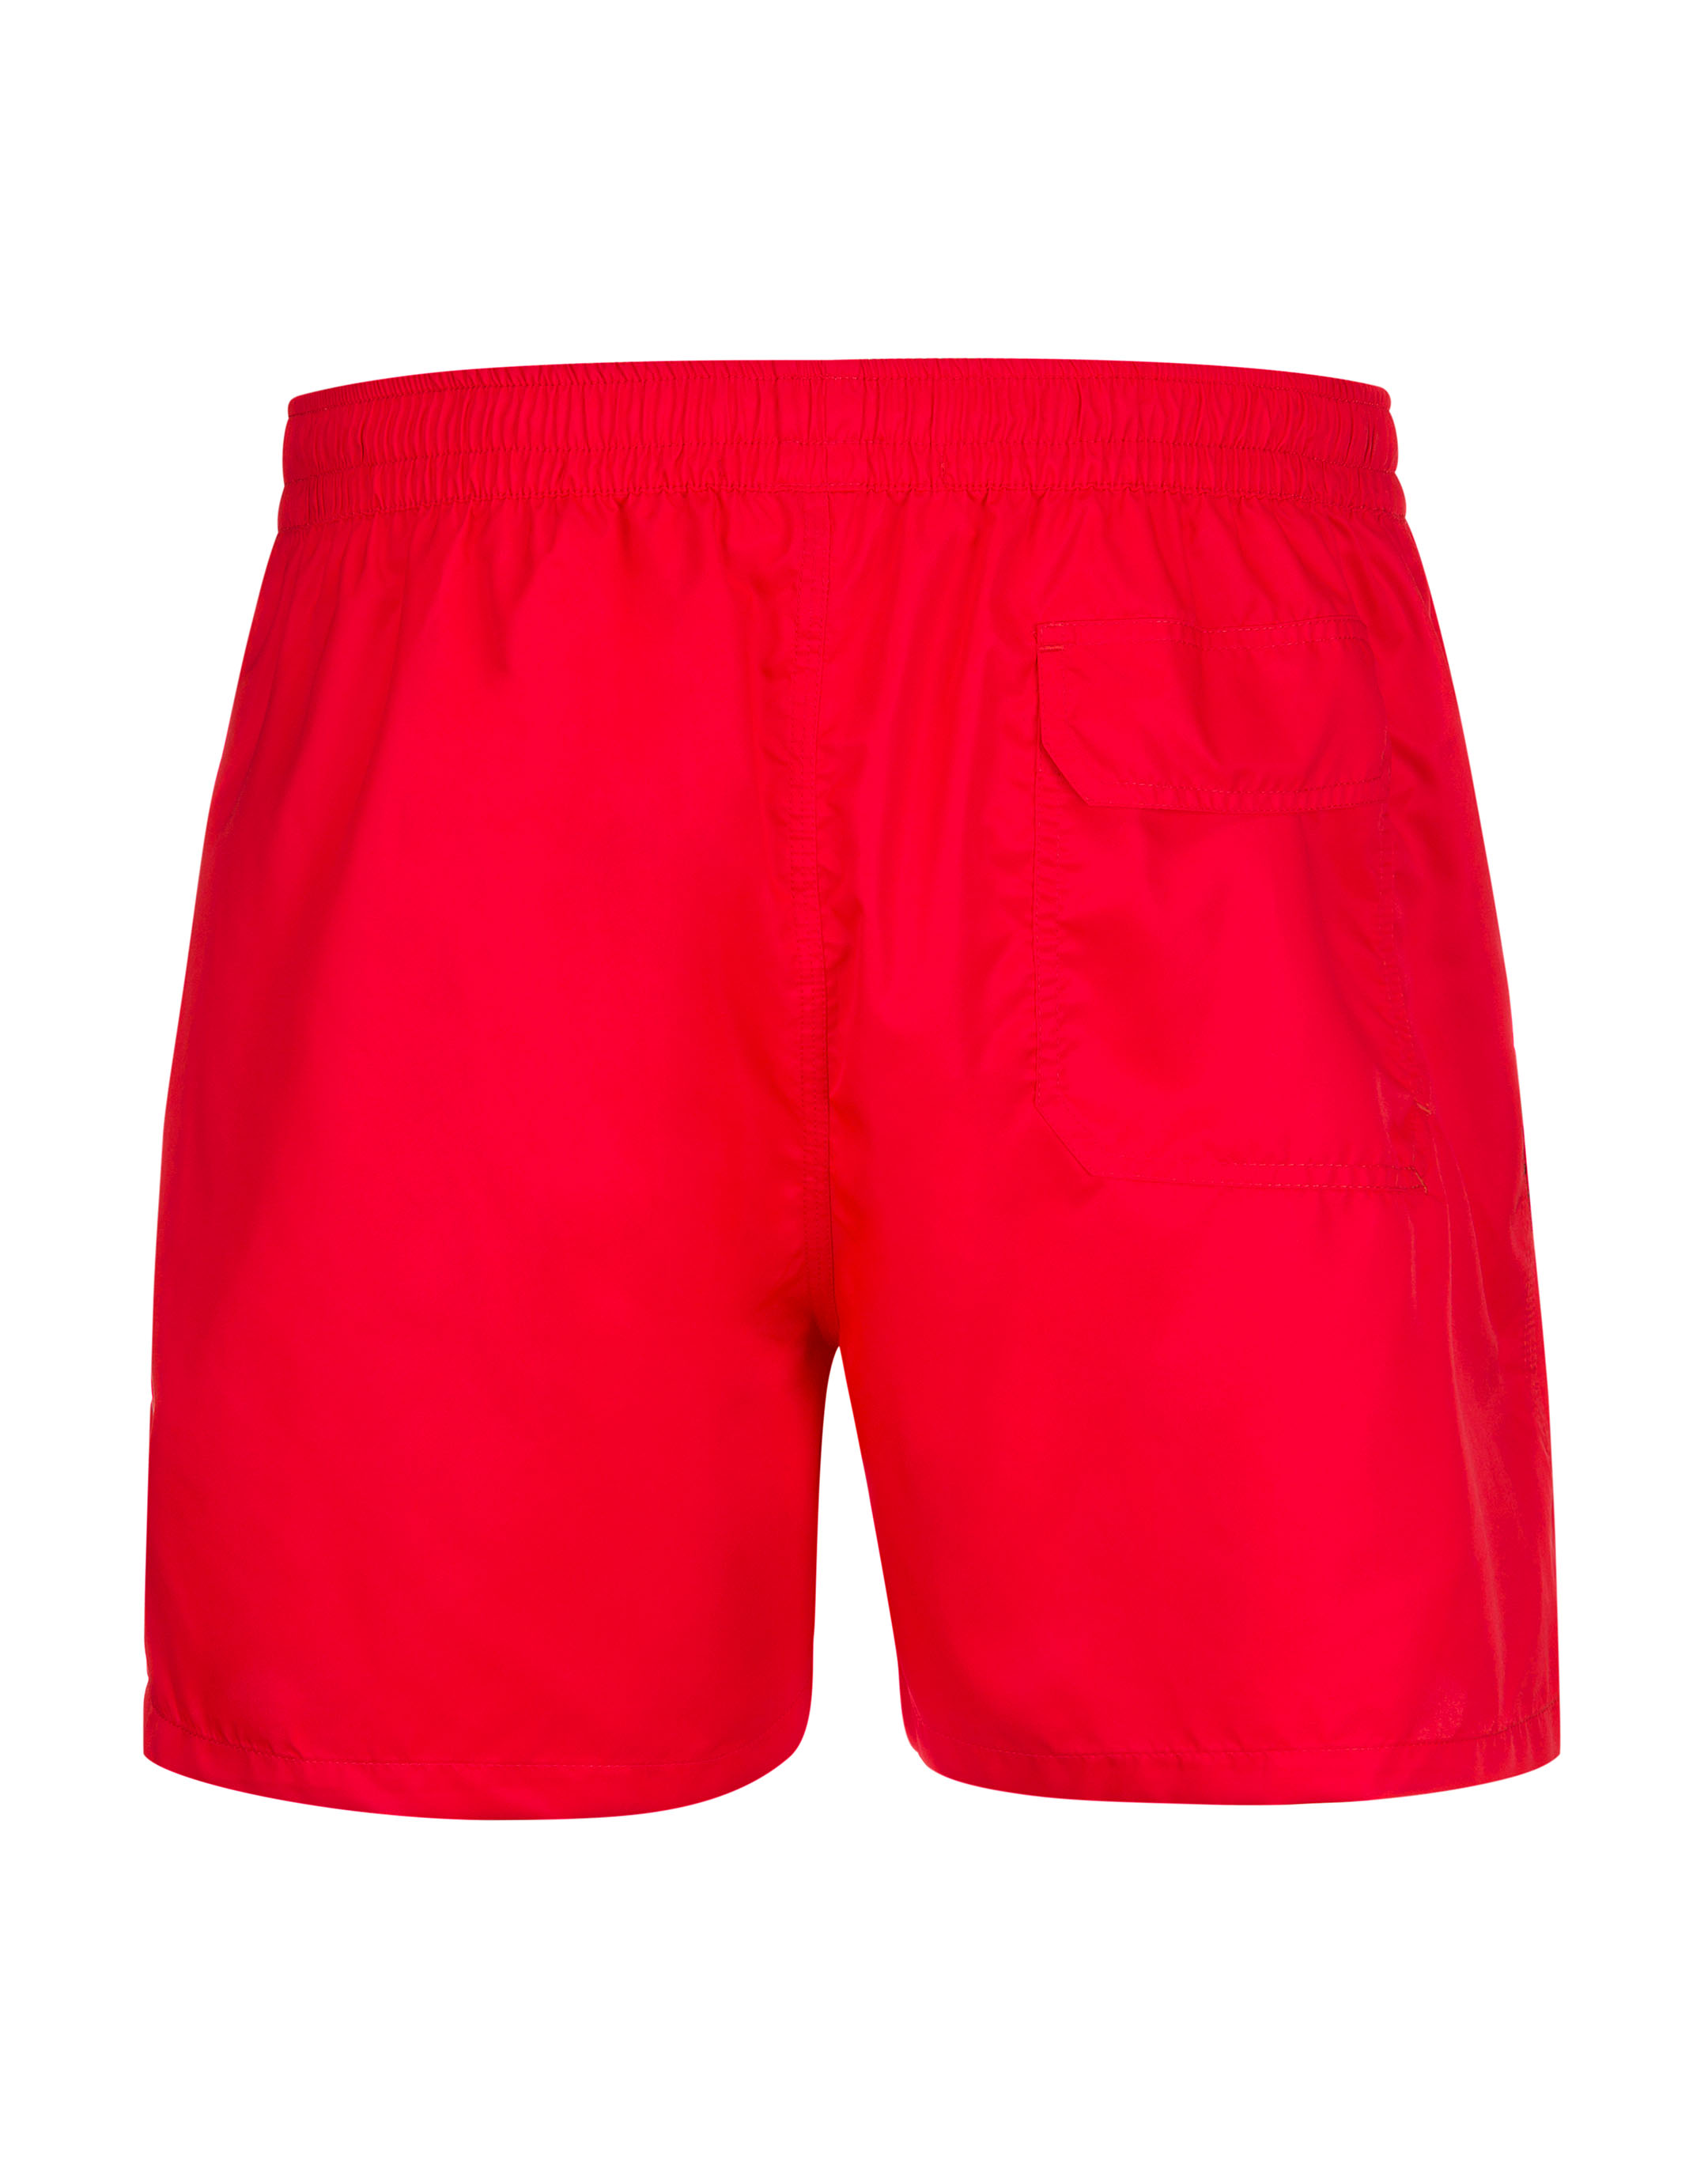 679e4d74ab Beachwear Short Trousers Members only Billionaire